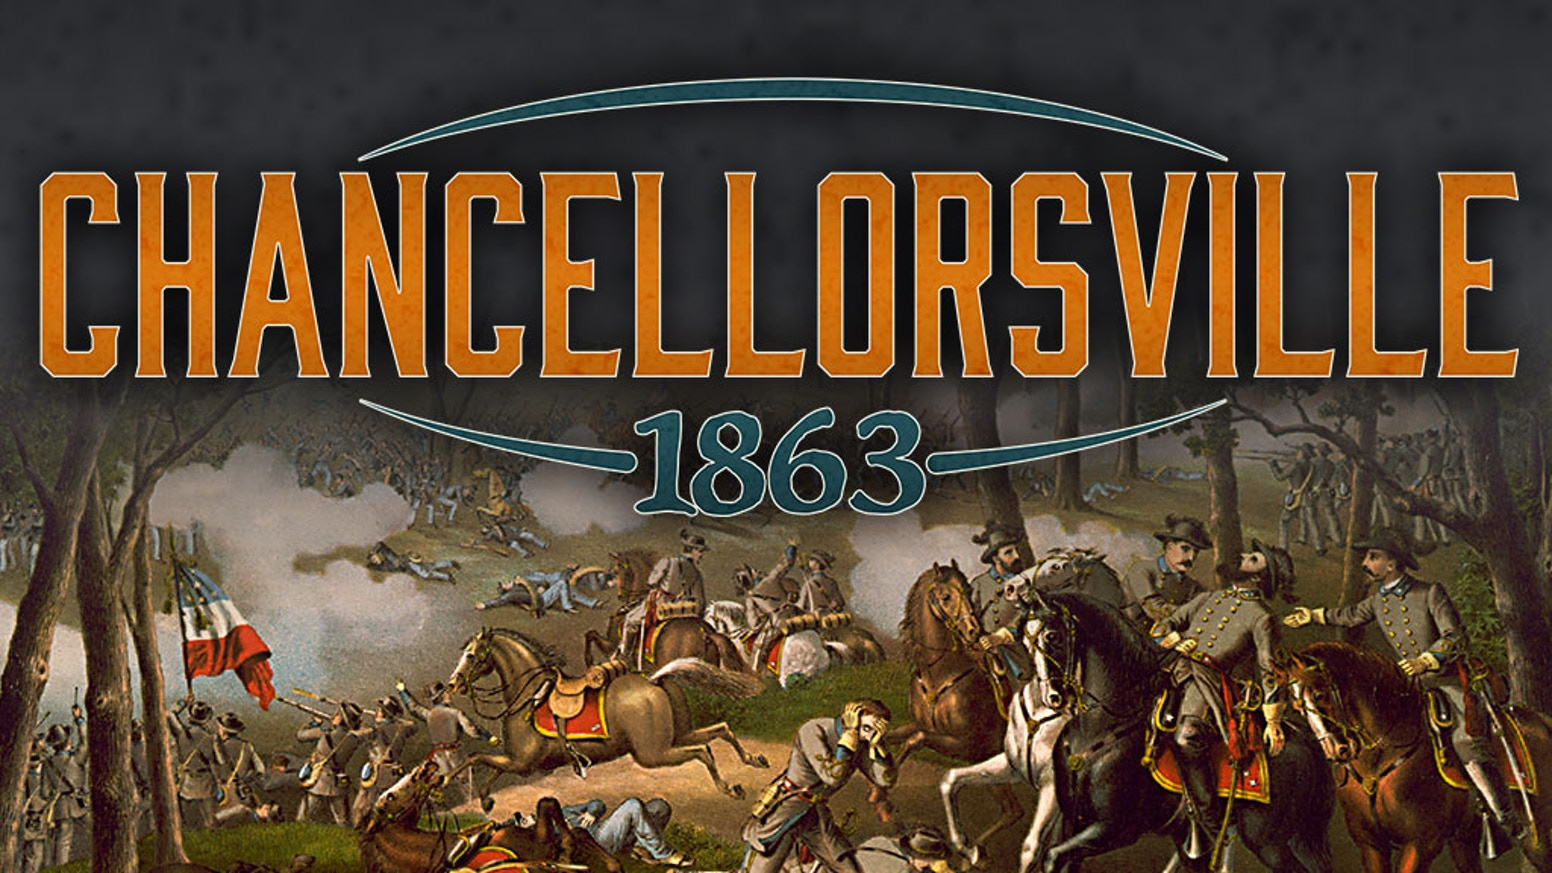 Playable in 1 hour.  For 1 to 2 players.  Innovative Civil War game with hidden movement, solitaire game engine, using military maps.